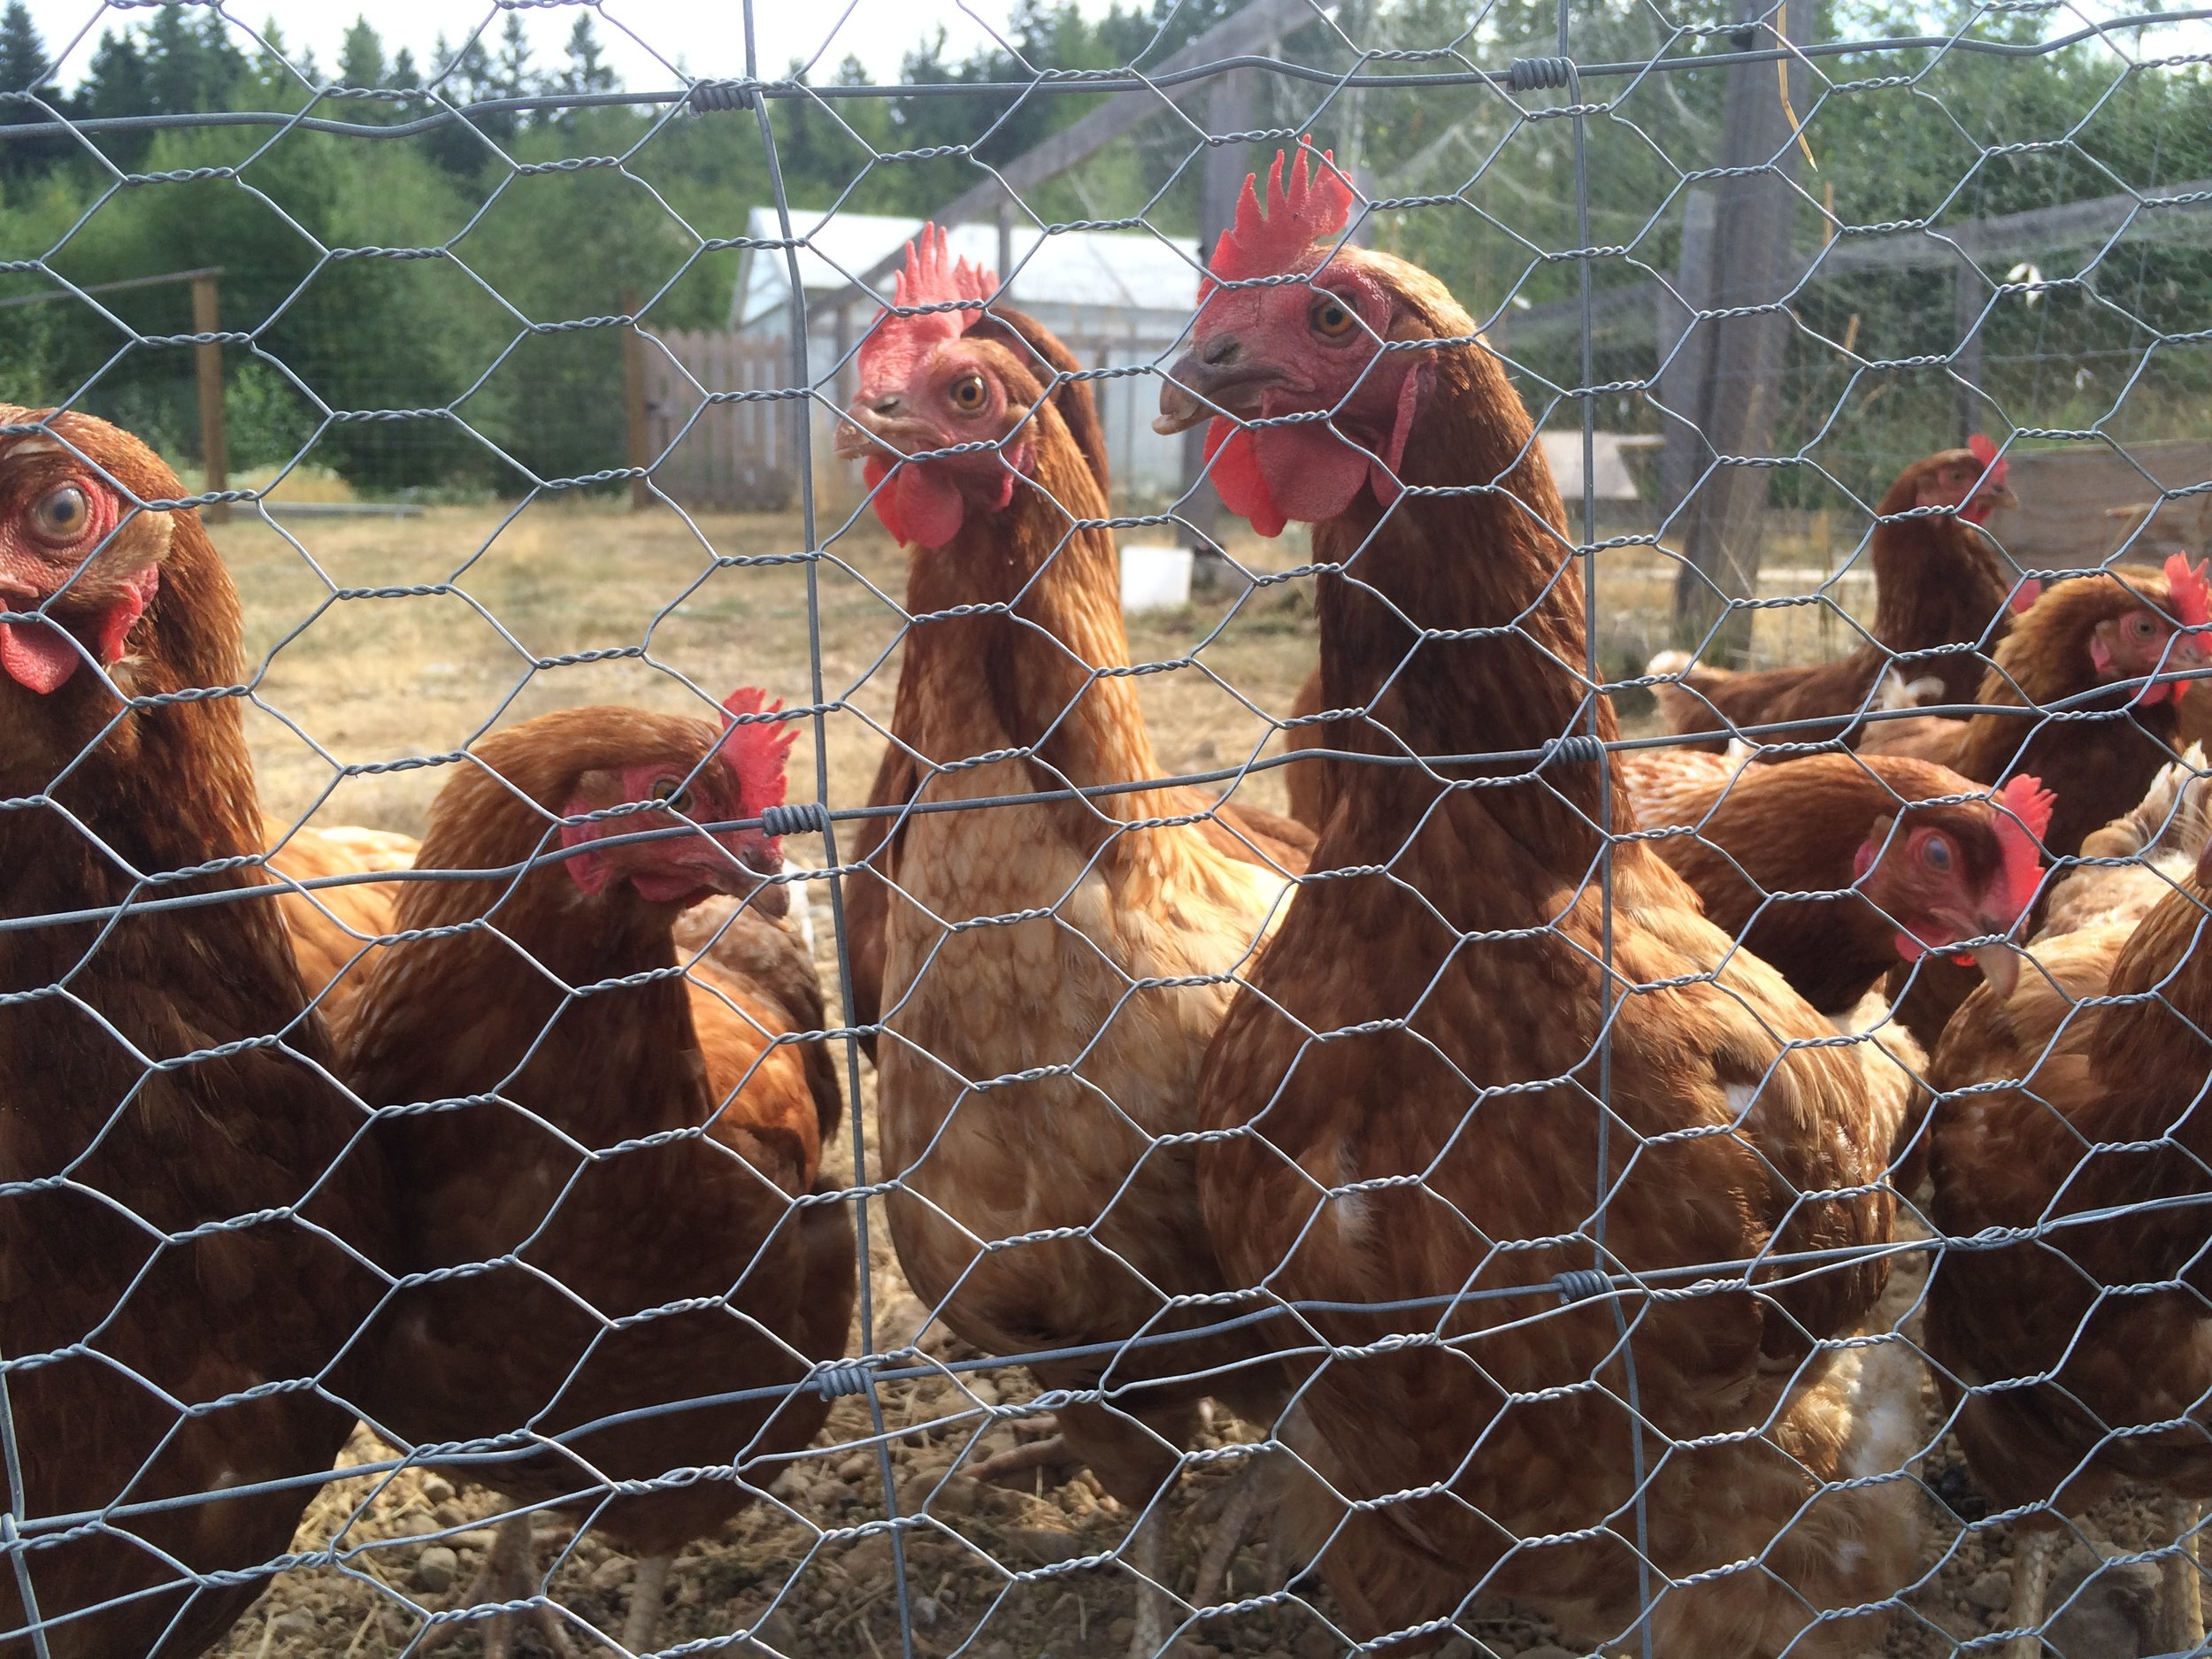 Henny Penny and the girls portrait, Sunshine Coast, BC